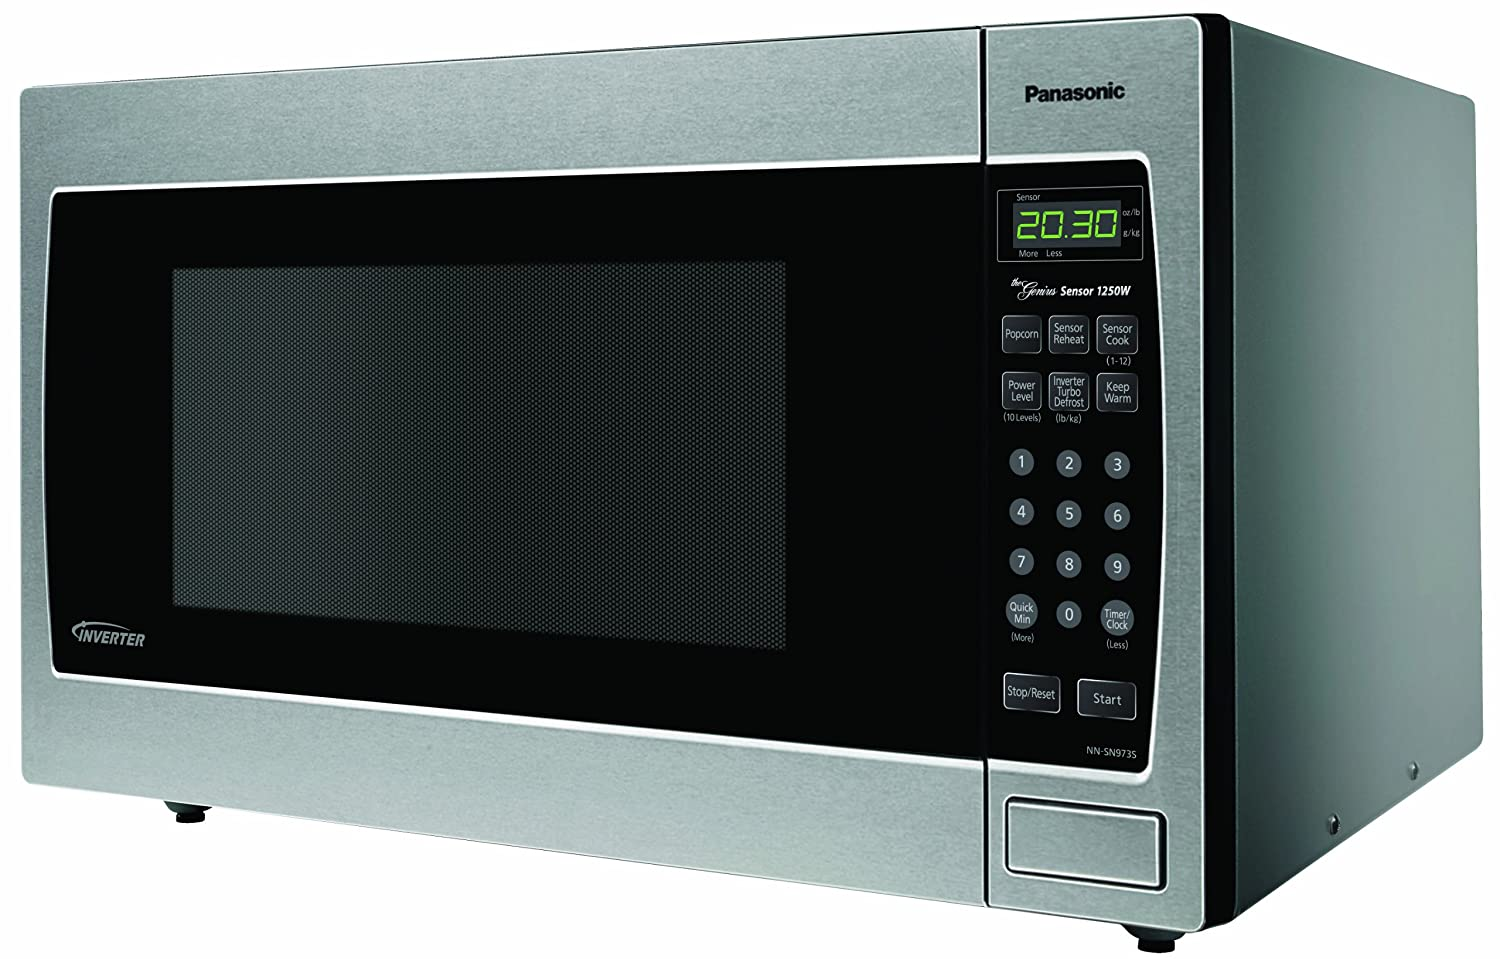 microwave oven with inverter technology for true variable microwave ...